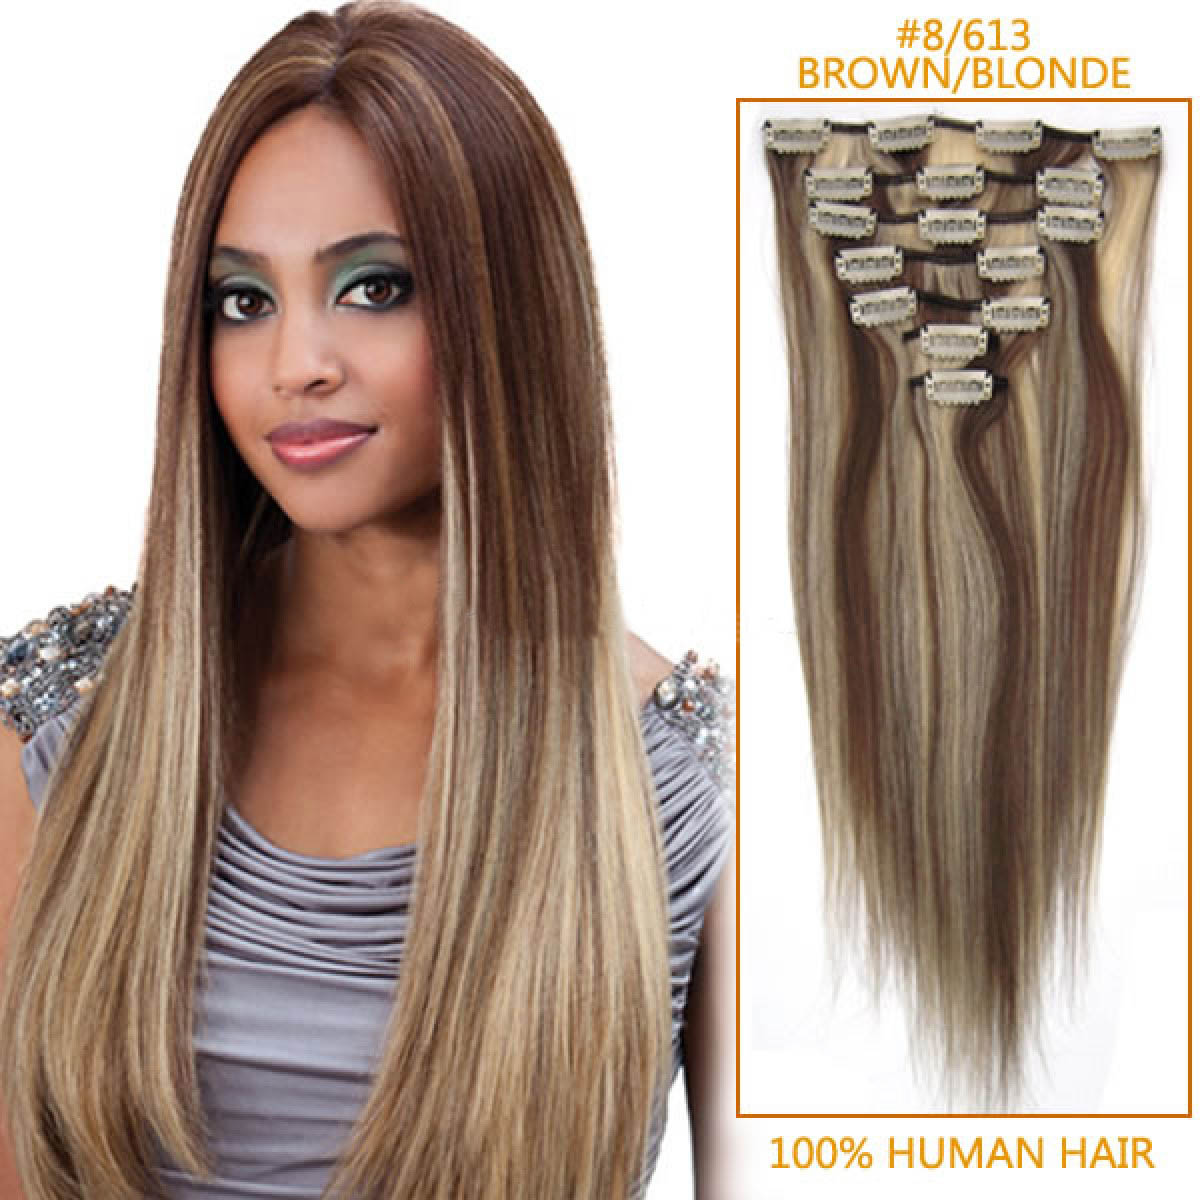 Inch 8613 brownblonde clip in human hair extensions 10pcs 24 inch 8613 brownblonde clip in human hair extensions 10pcs pmusecretfo Image collections